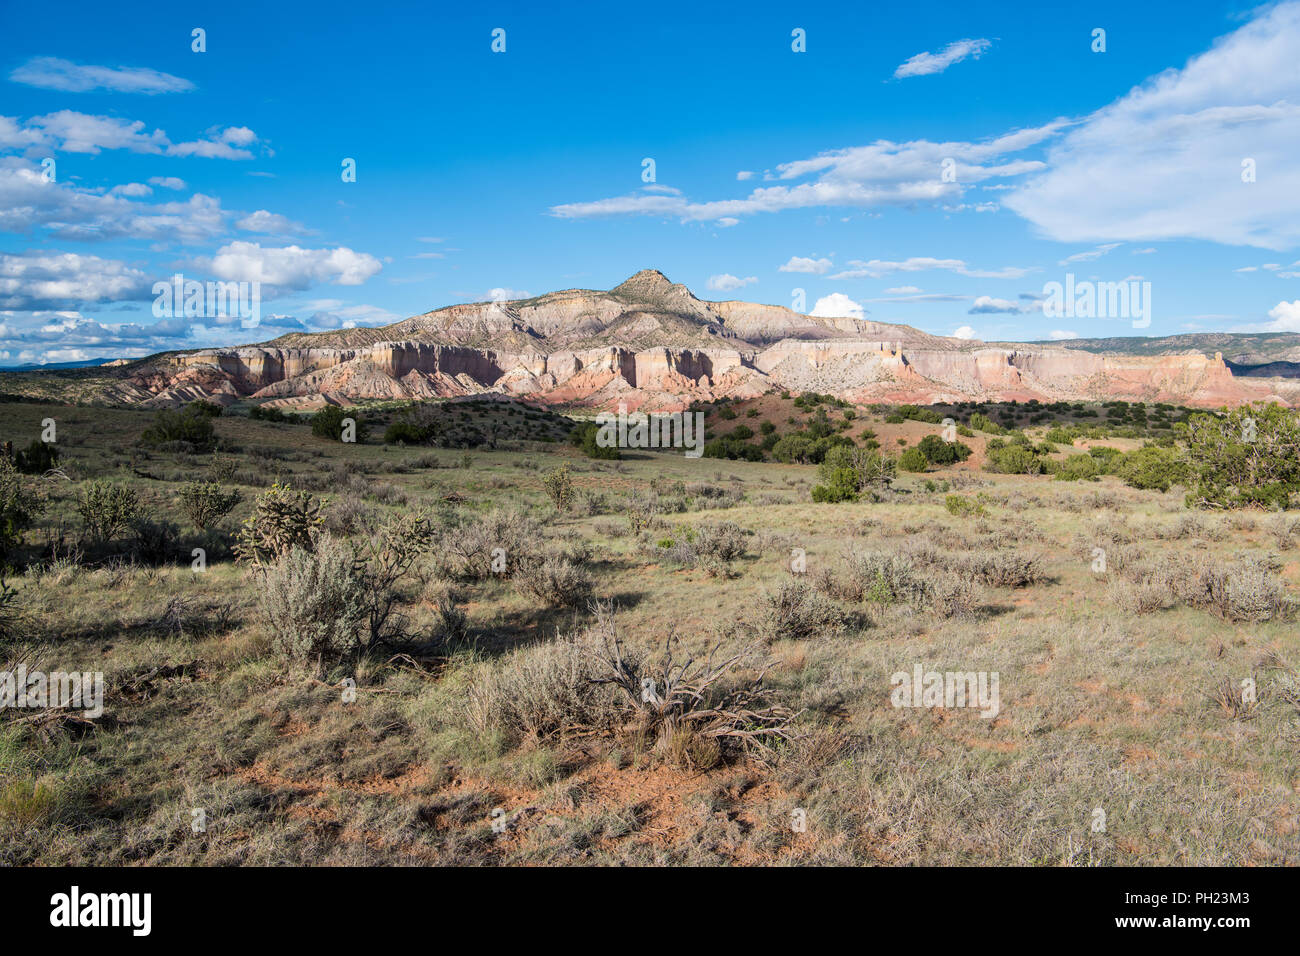 Mountain peak, colorful cliffs, and vast desert landscape underneath dramatic blue sky and clouds at Ghost Ranch near Abiquiu, New Mexico - Stock Image